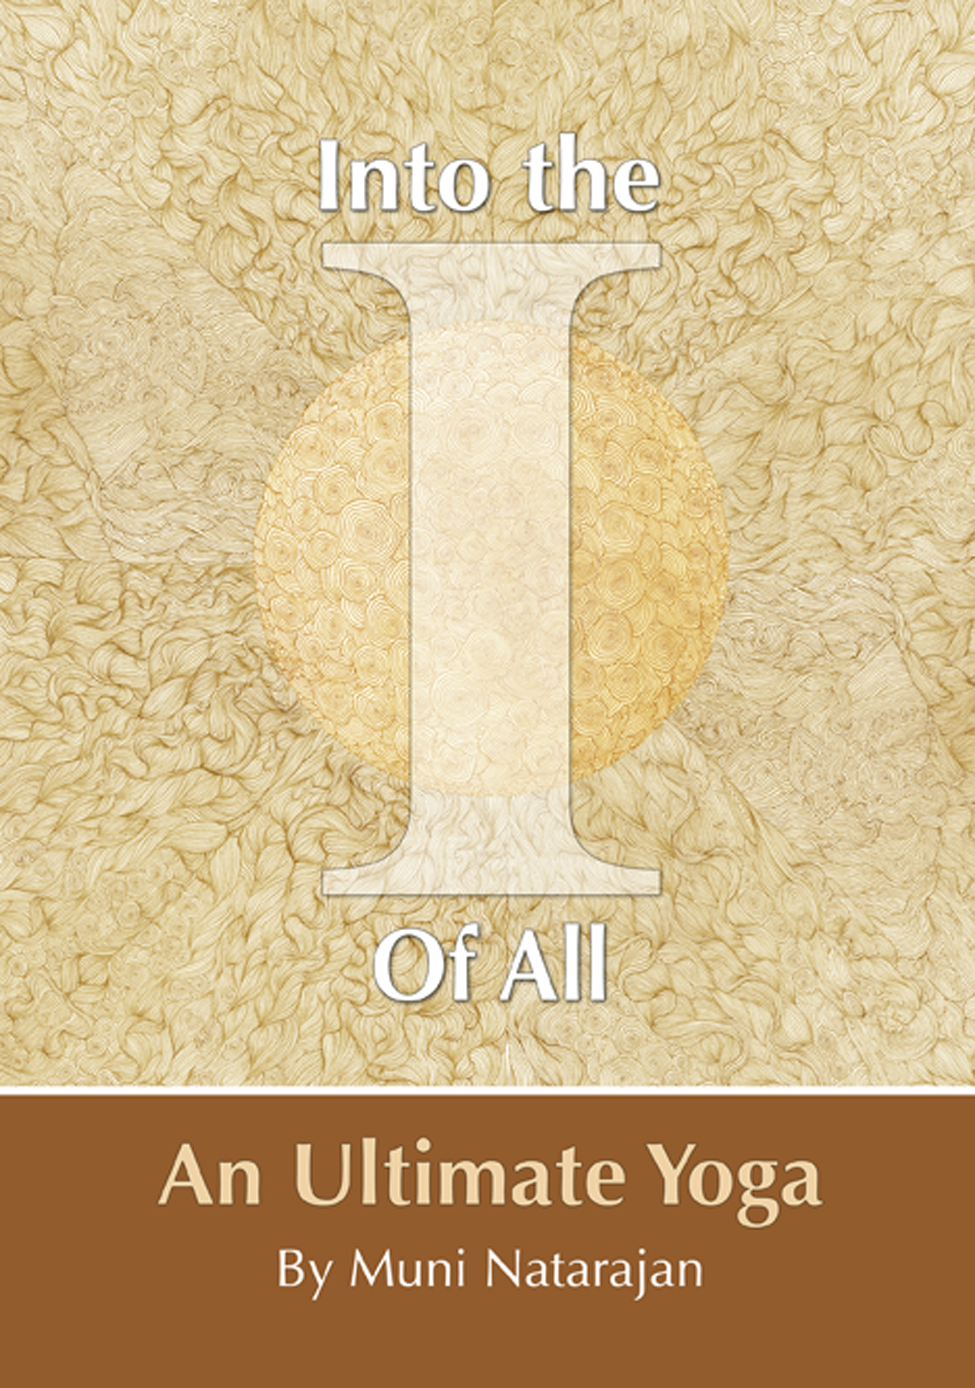 Into the I of All: An Ultimate Yoga.